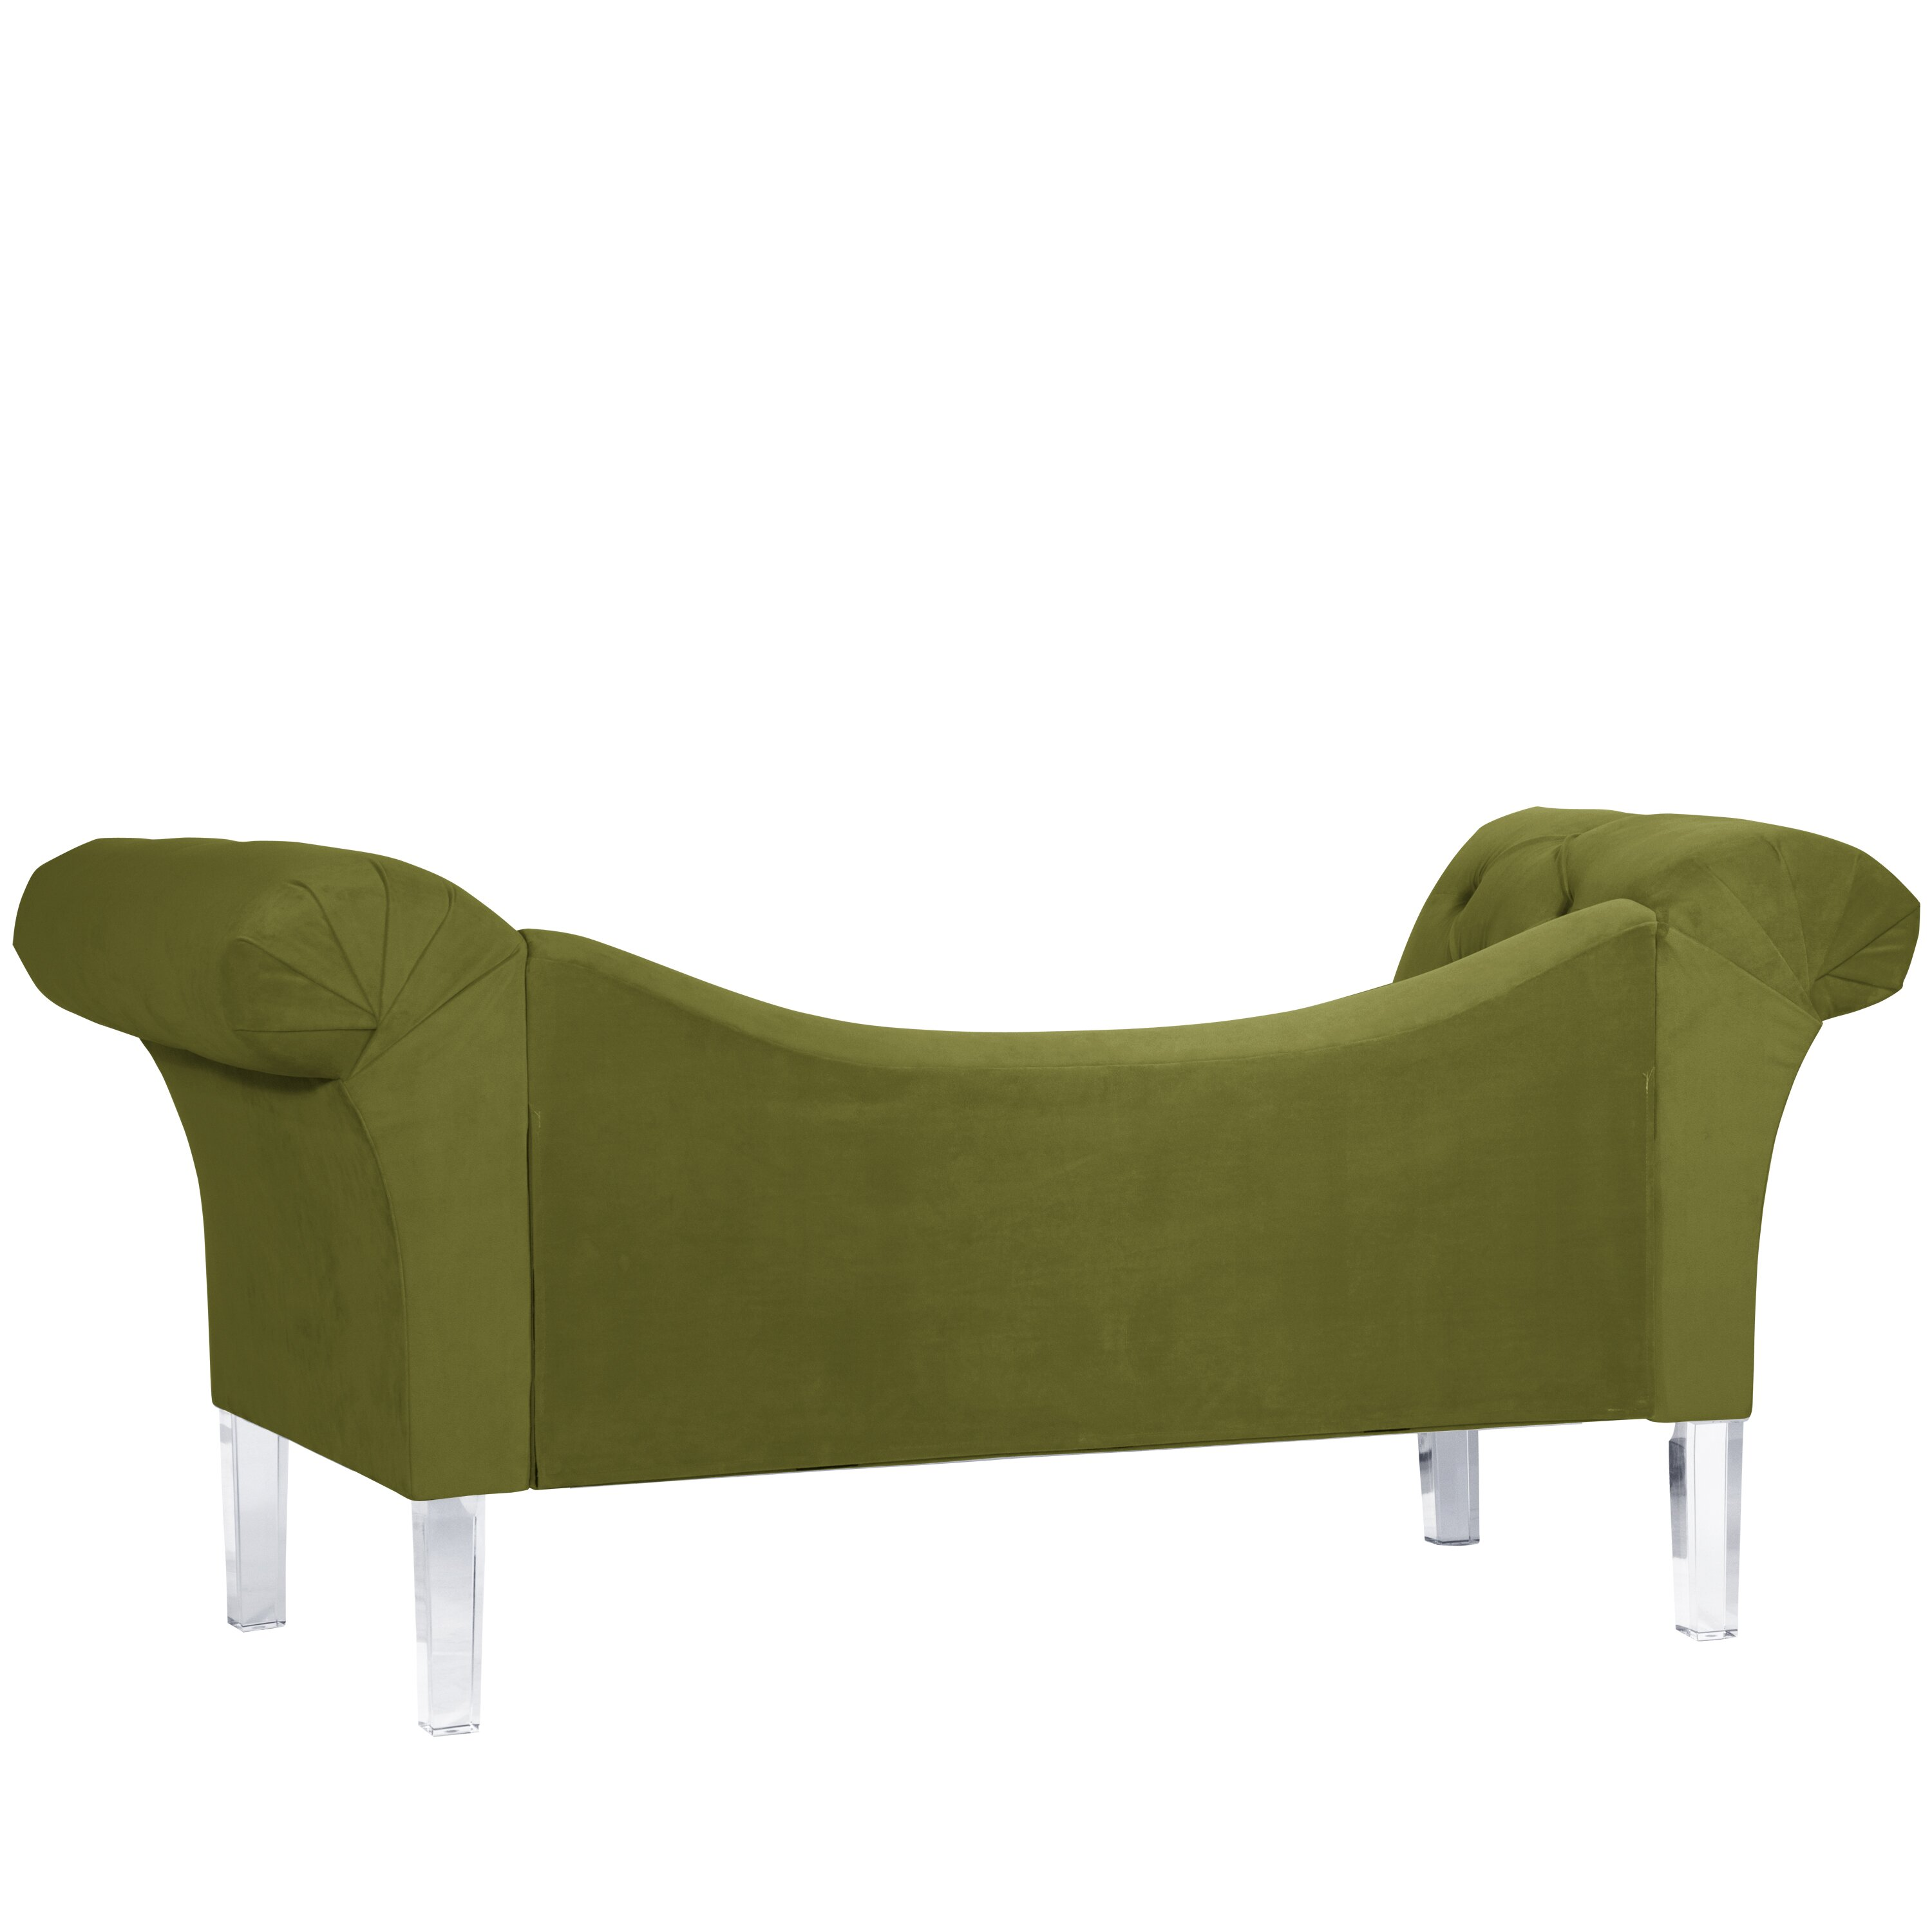 House of hampton wadebridge chaise lounge reviews - Chaise a housser ...